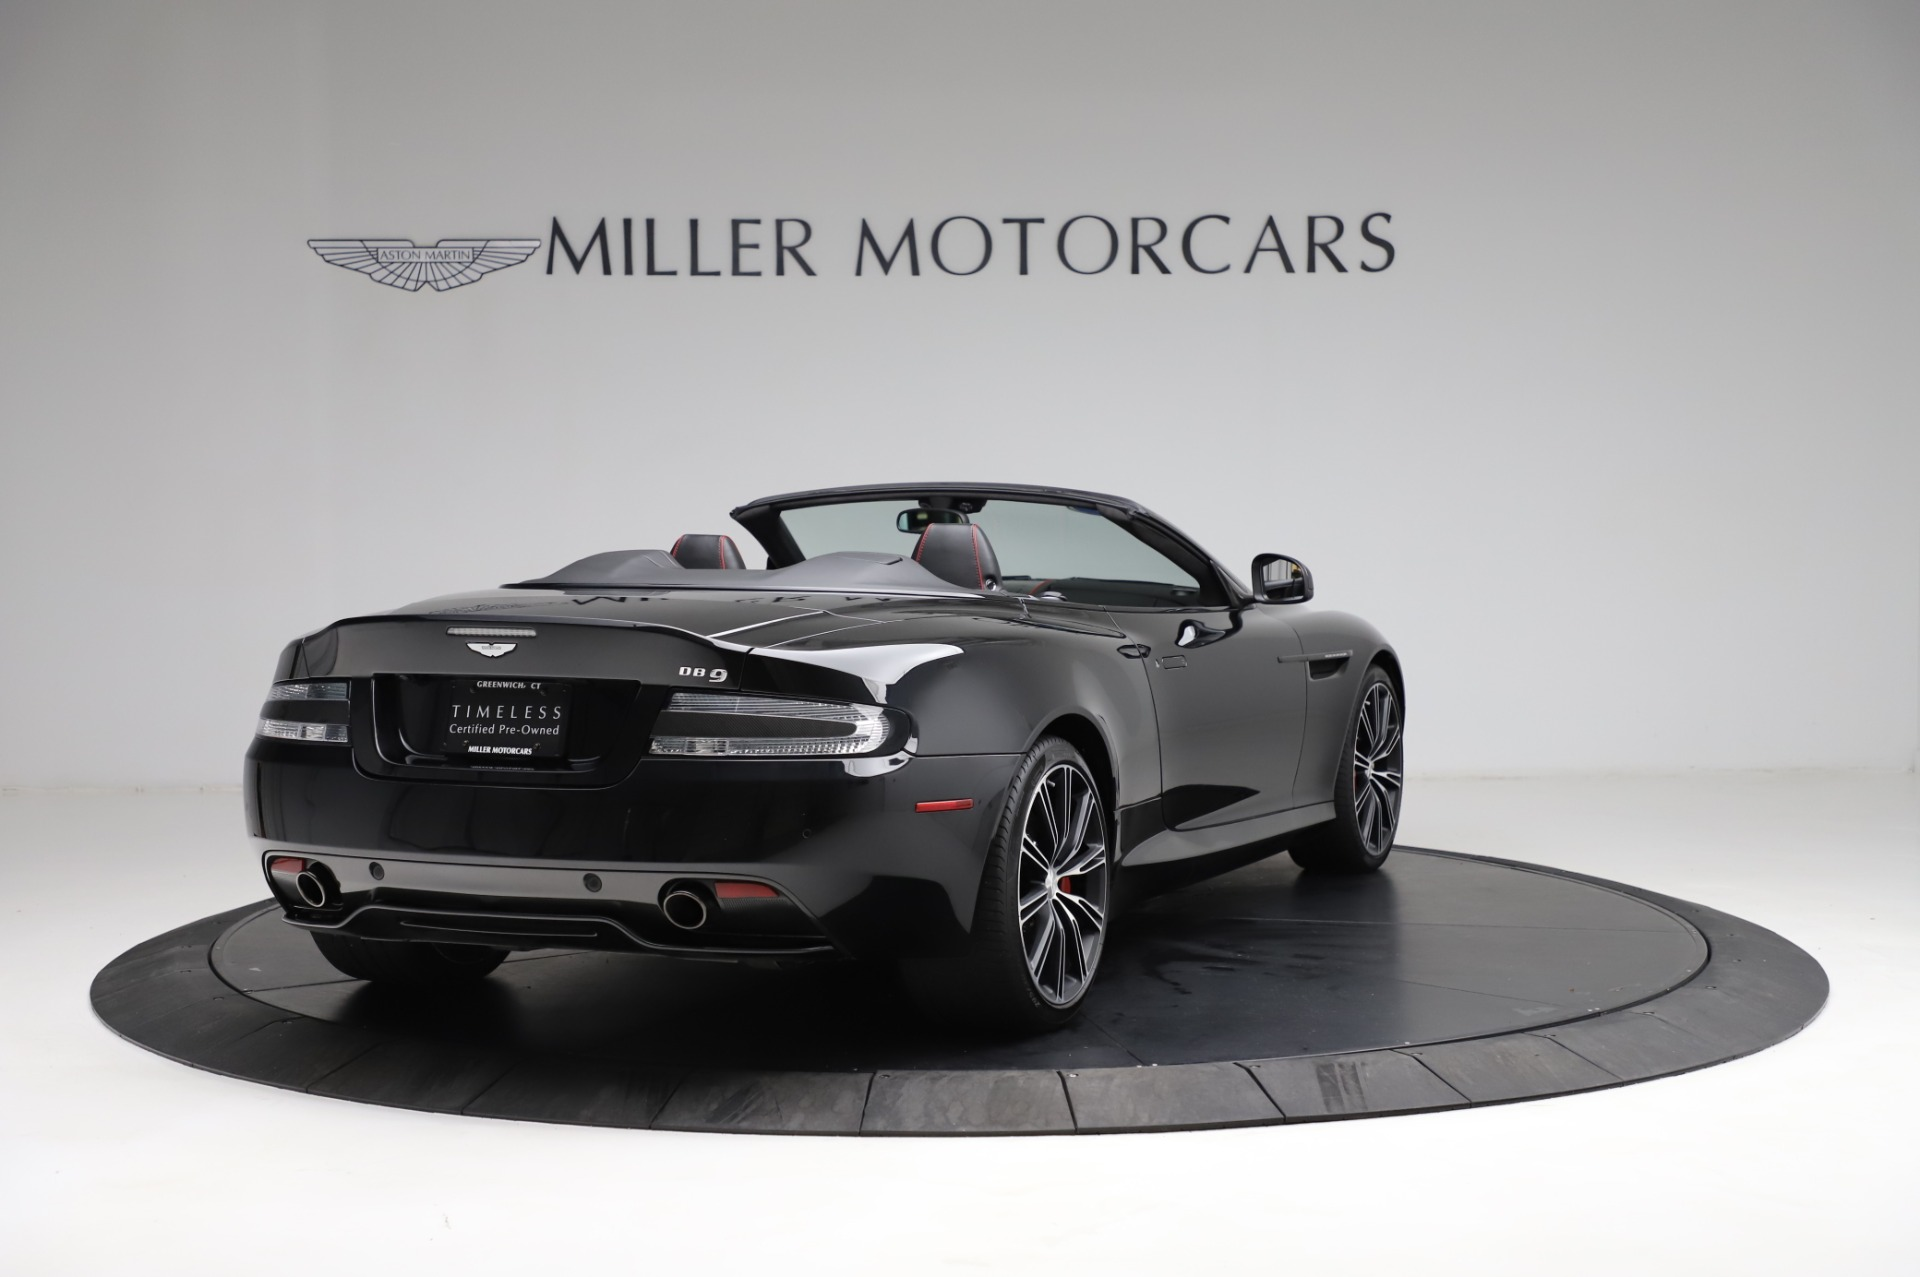 Used 2015 Aston Martin DB9 Convertible For Sale In Westport, CT 1919_p6